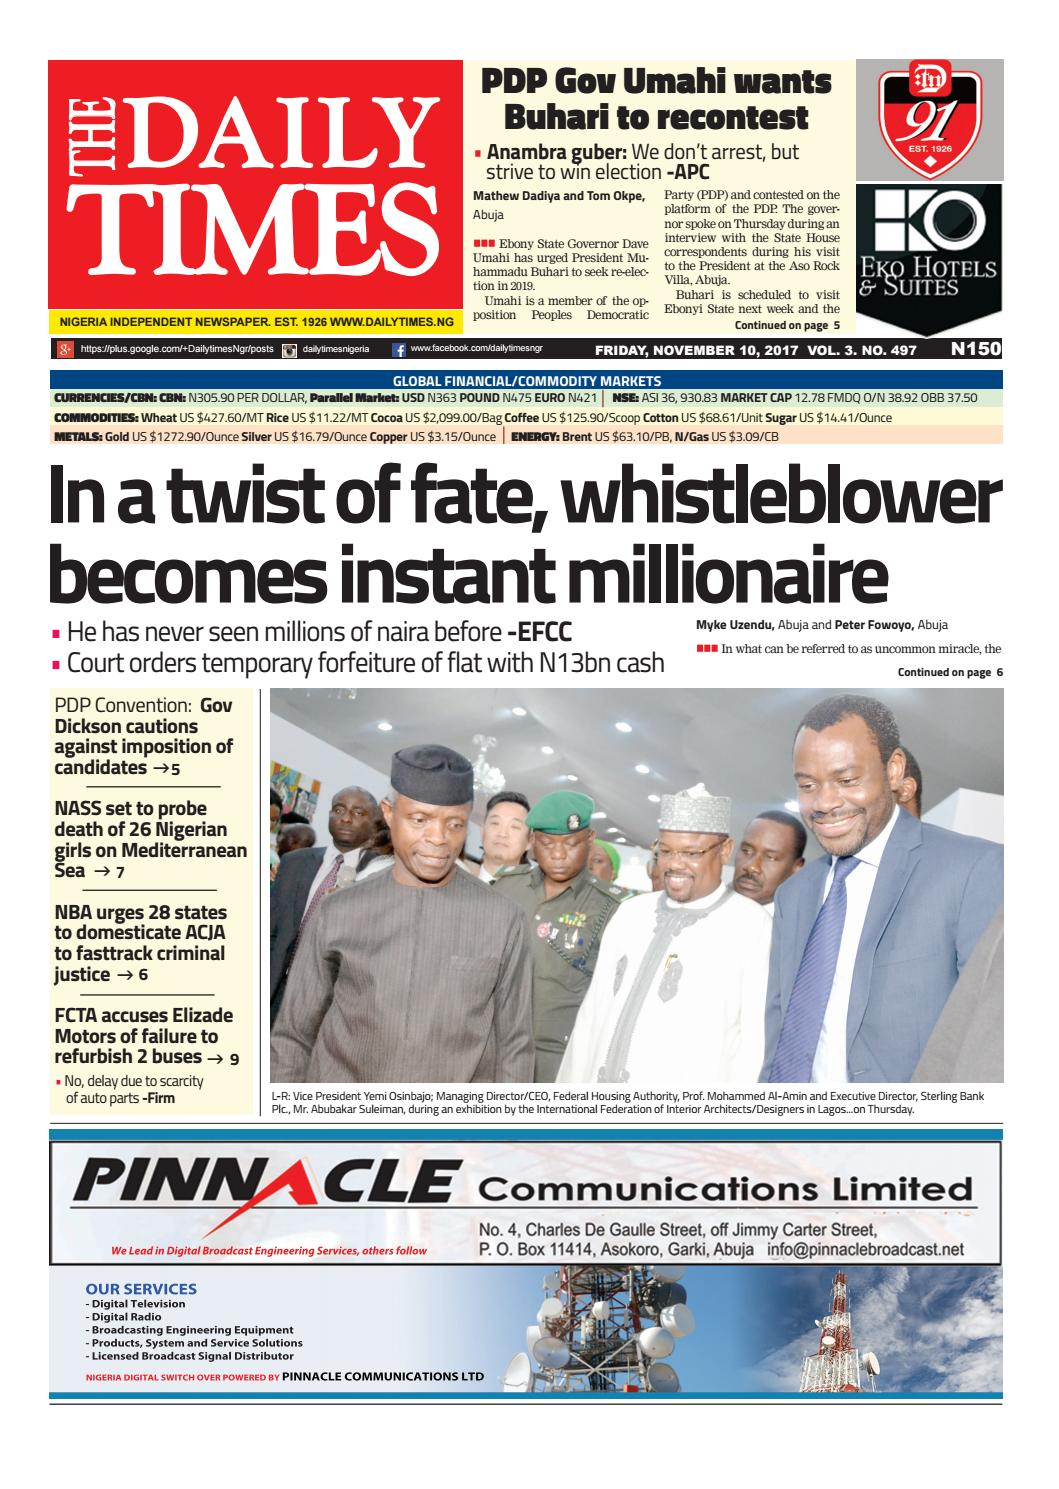 Dtn 10 11 17 by Daily Times of Nigeria - issuu